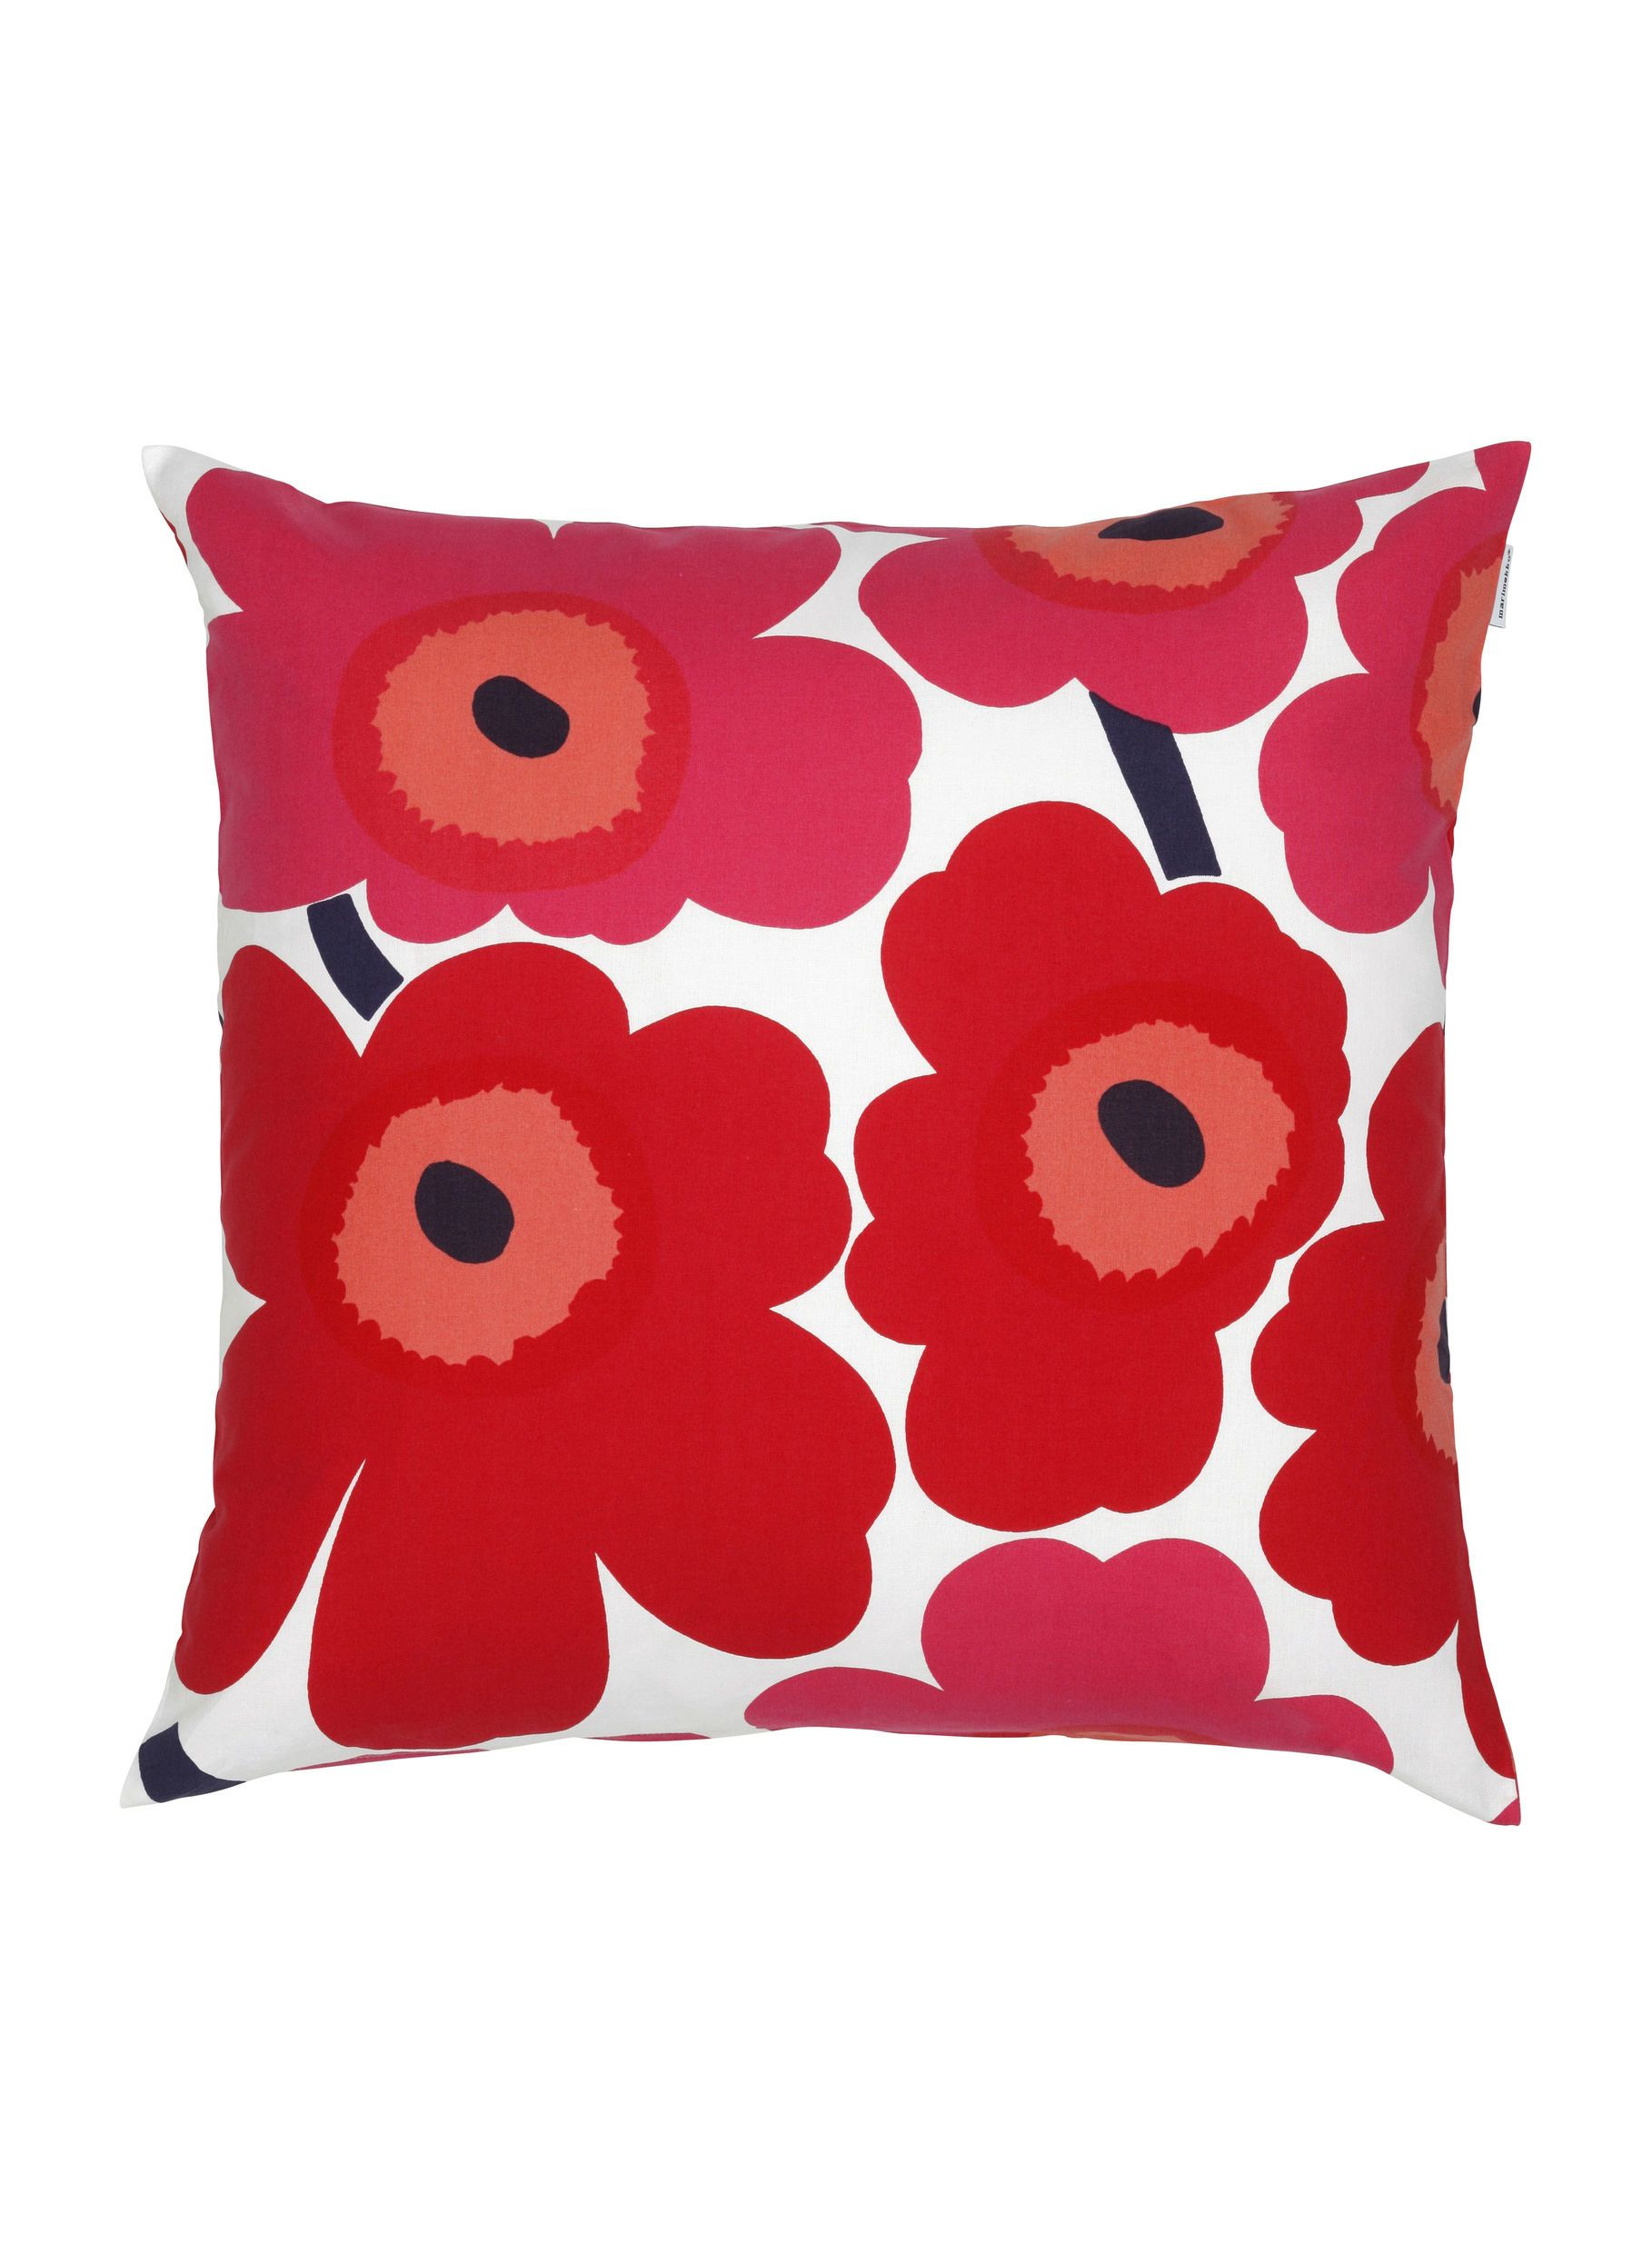 Marimekko, Pieni Unikko Cushion Cover, White/Red- Placewares